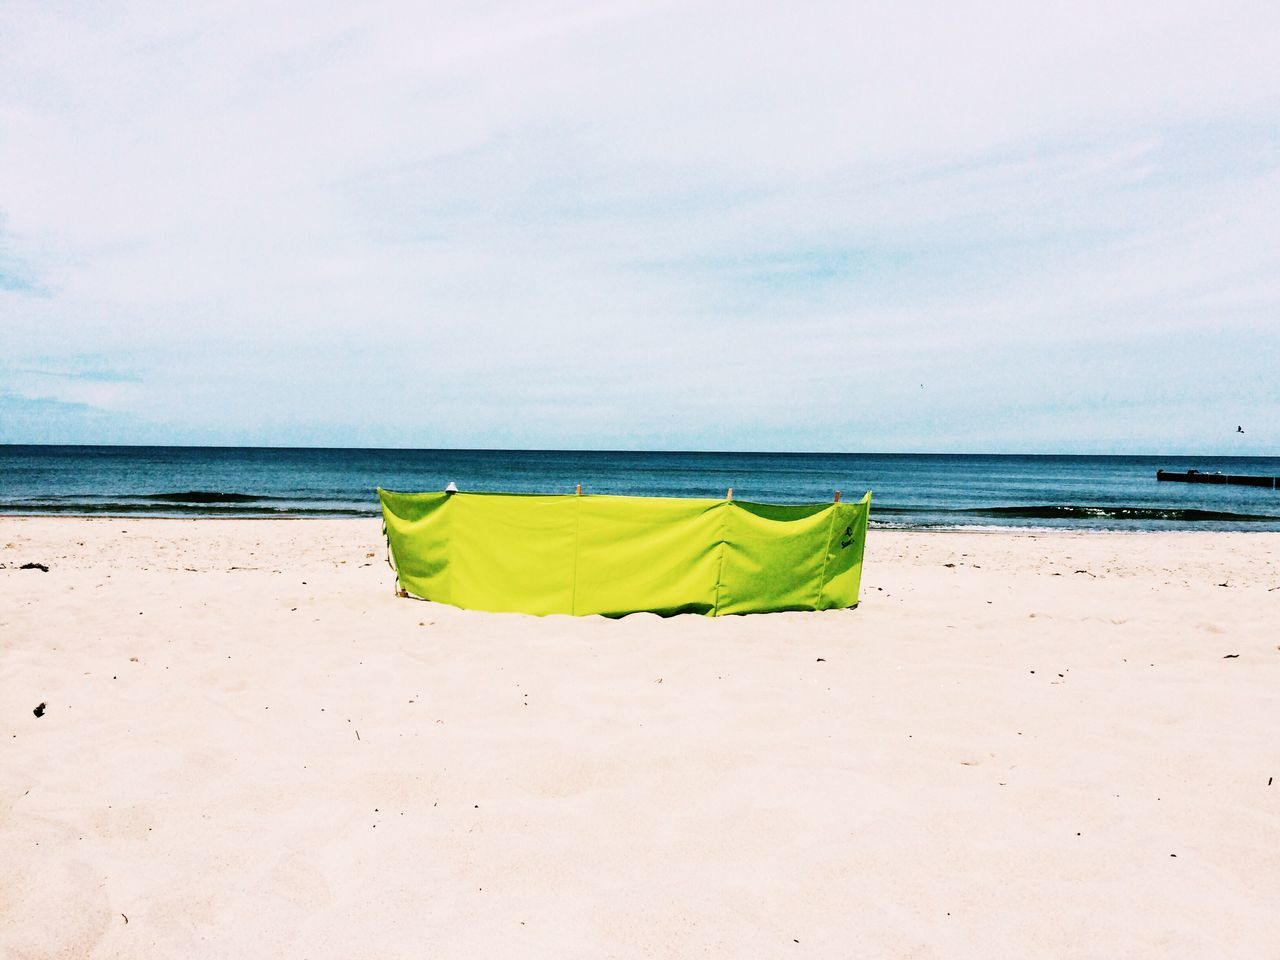 sea, beach, sand, horizon over water, yellow, sky, water, nature, day, green color, no people, tranquility, outdoors, beauty in nature